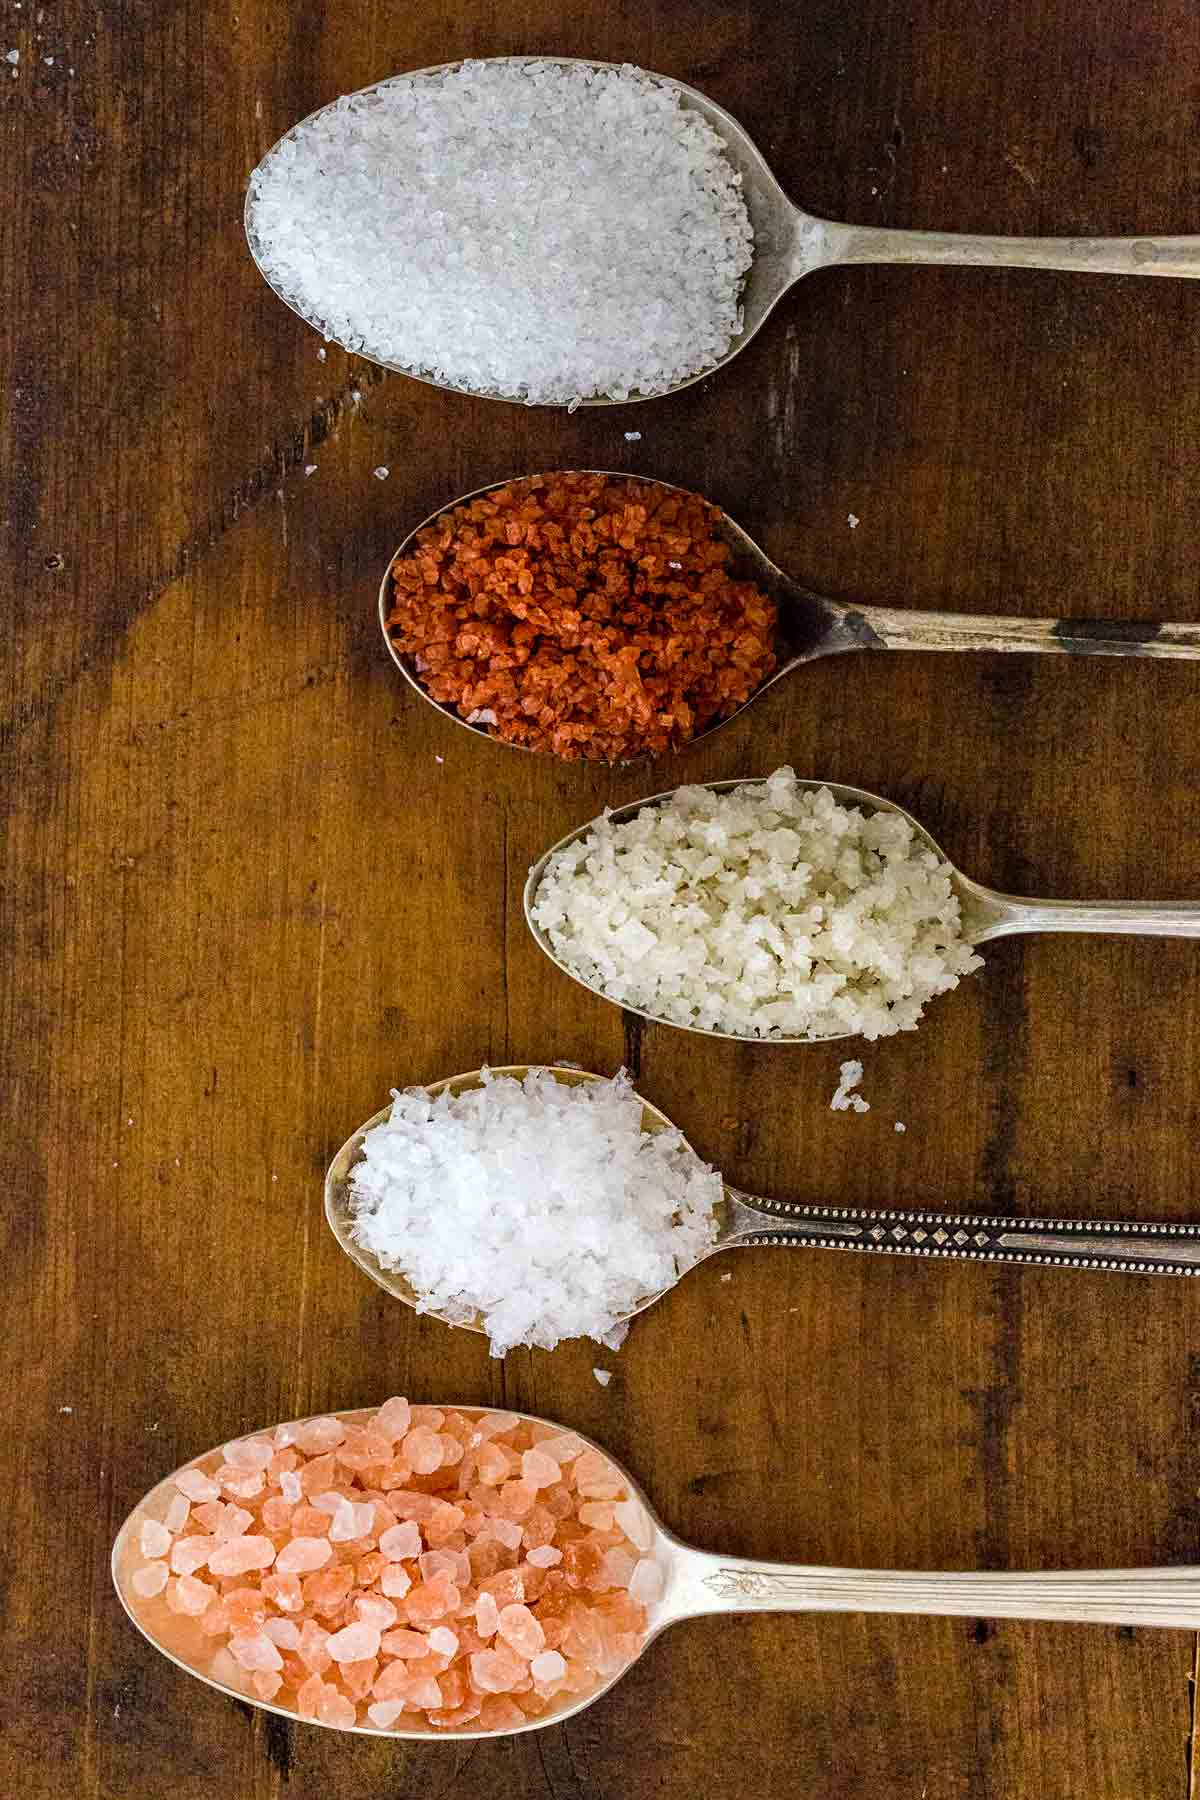 Salt is the most essential and versatile product to have stocked up in the kitchen. Necessary for cooking, baking, and seasoning. Let's learn about the different types of salt, their uses, and taste profiles.